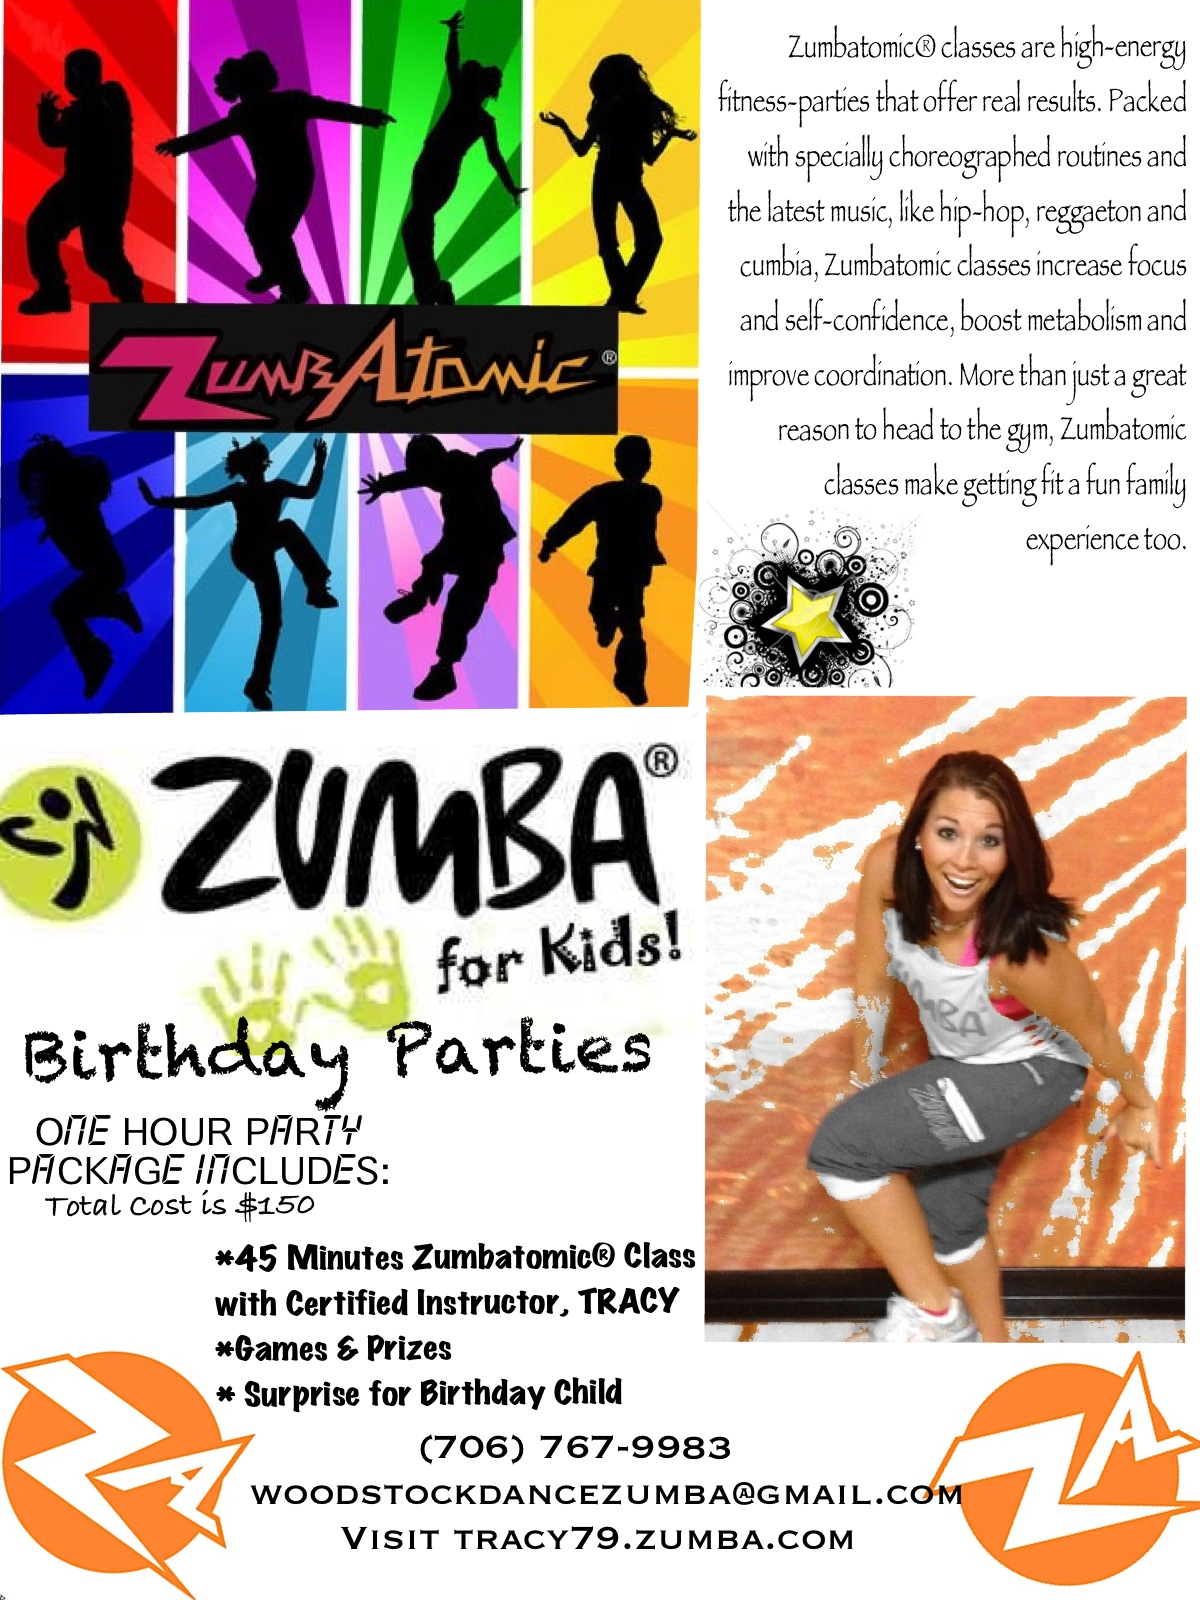 Zumba fitness sunnys occasions zumba party flyer stopboris Image collections